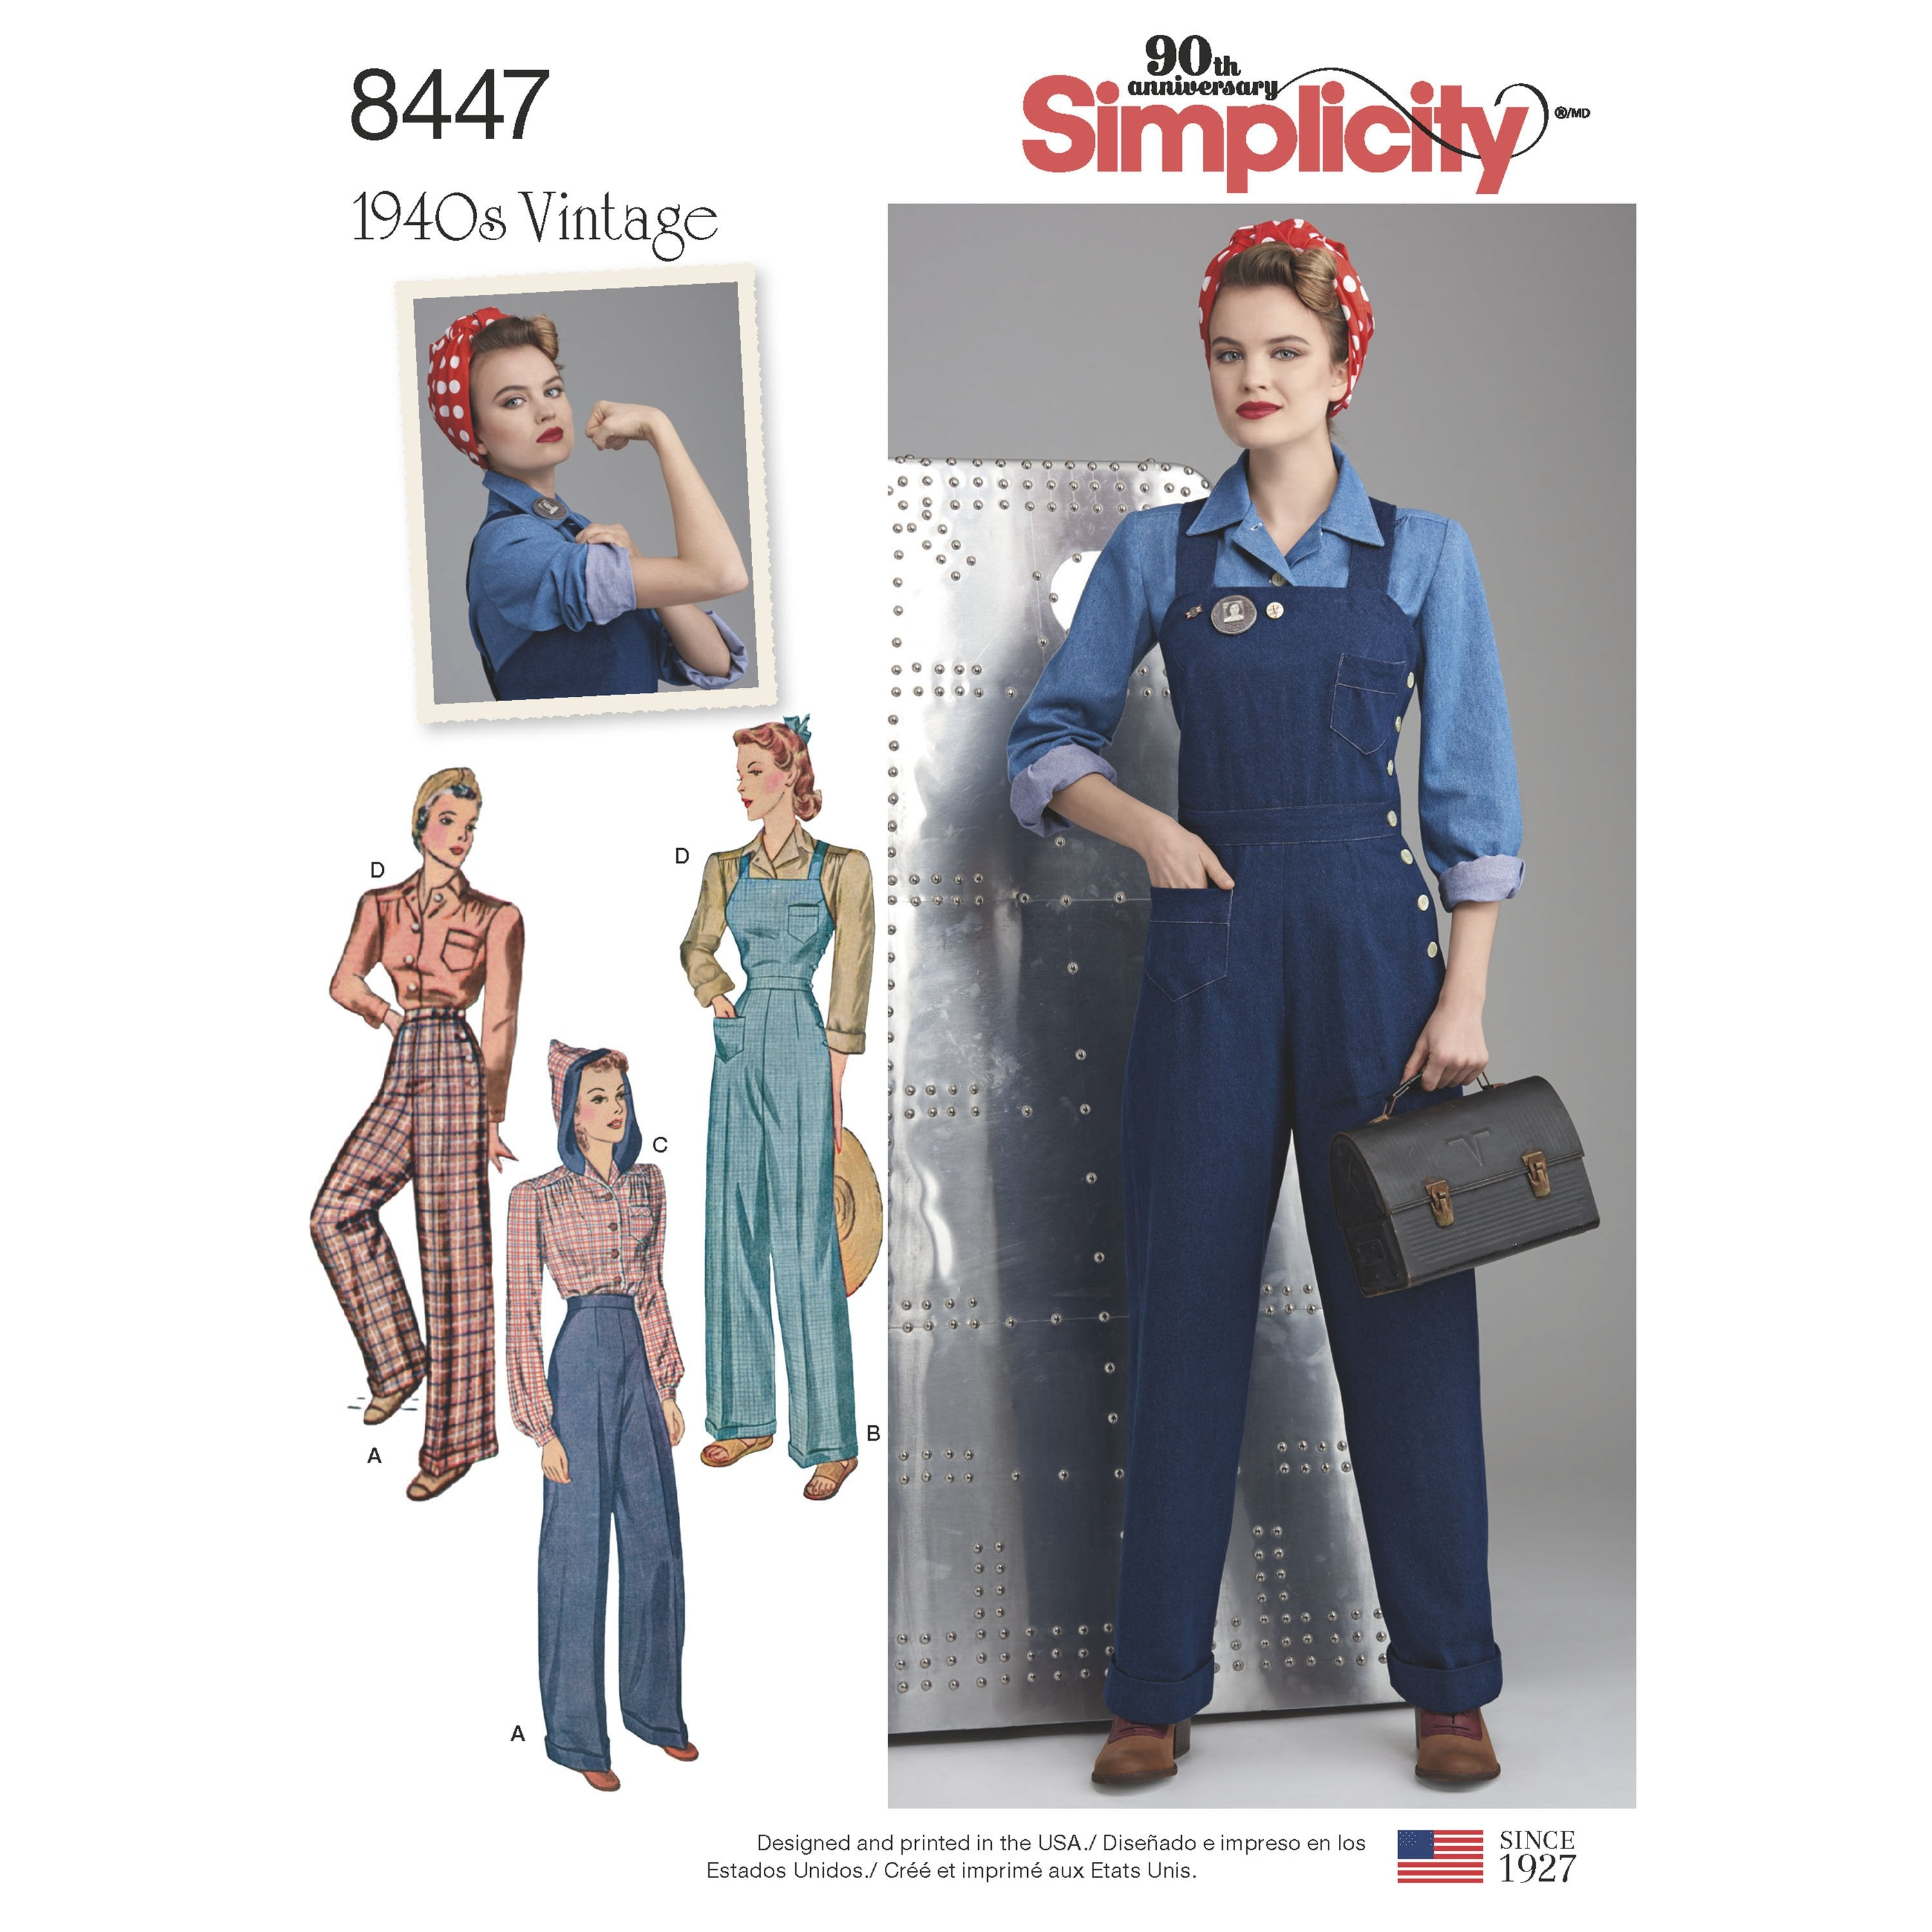 S8447 Vintage Trousers, Overalls and Blouses